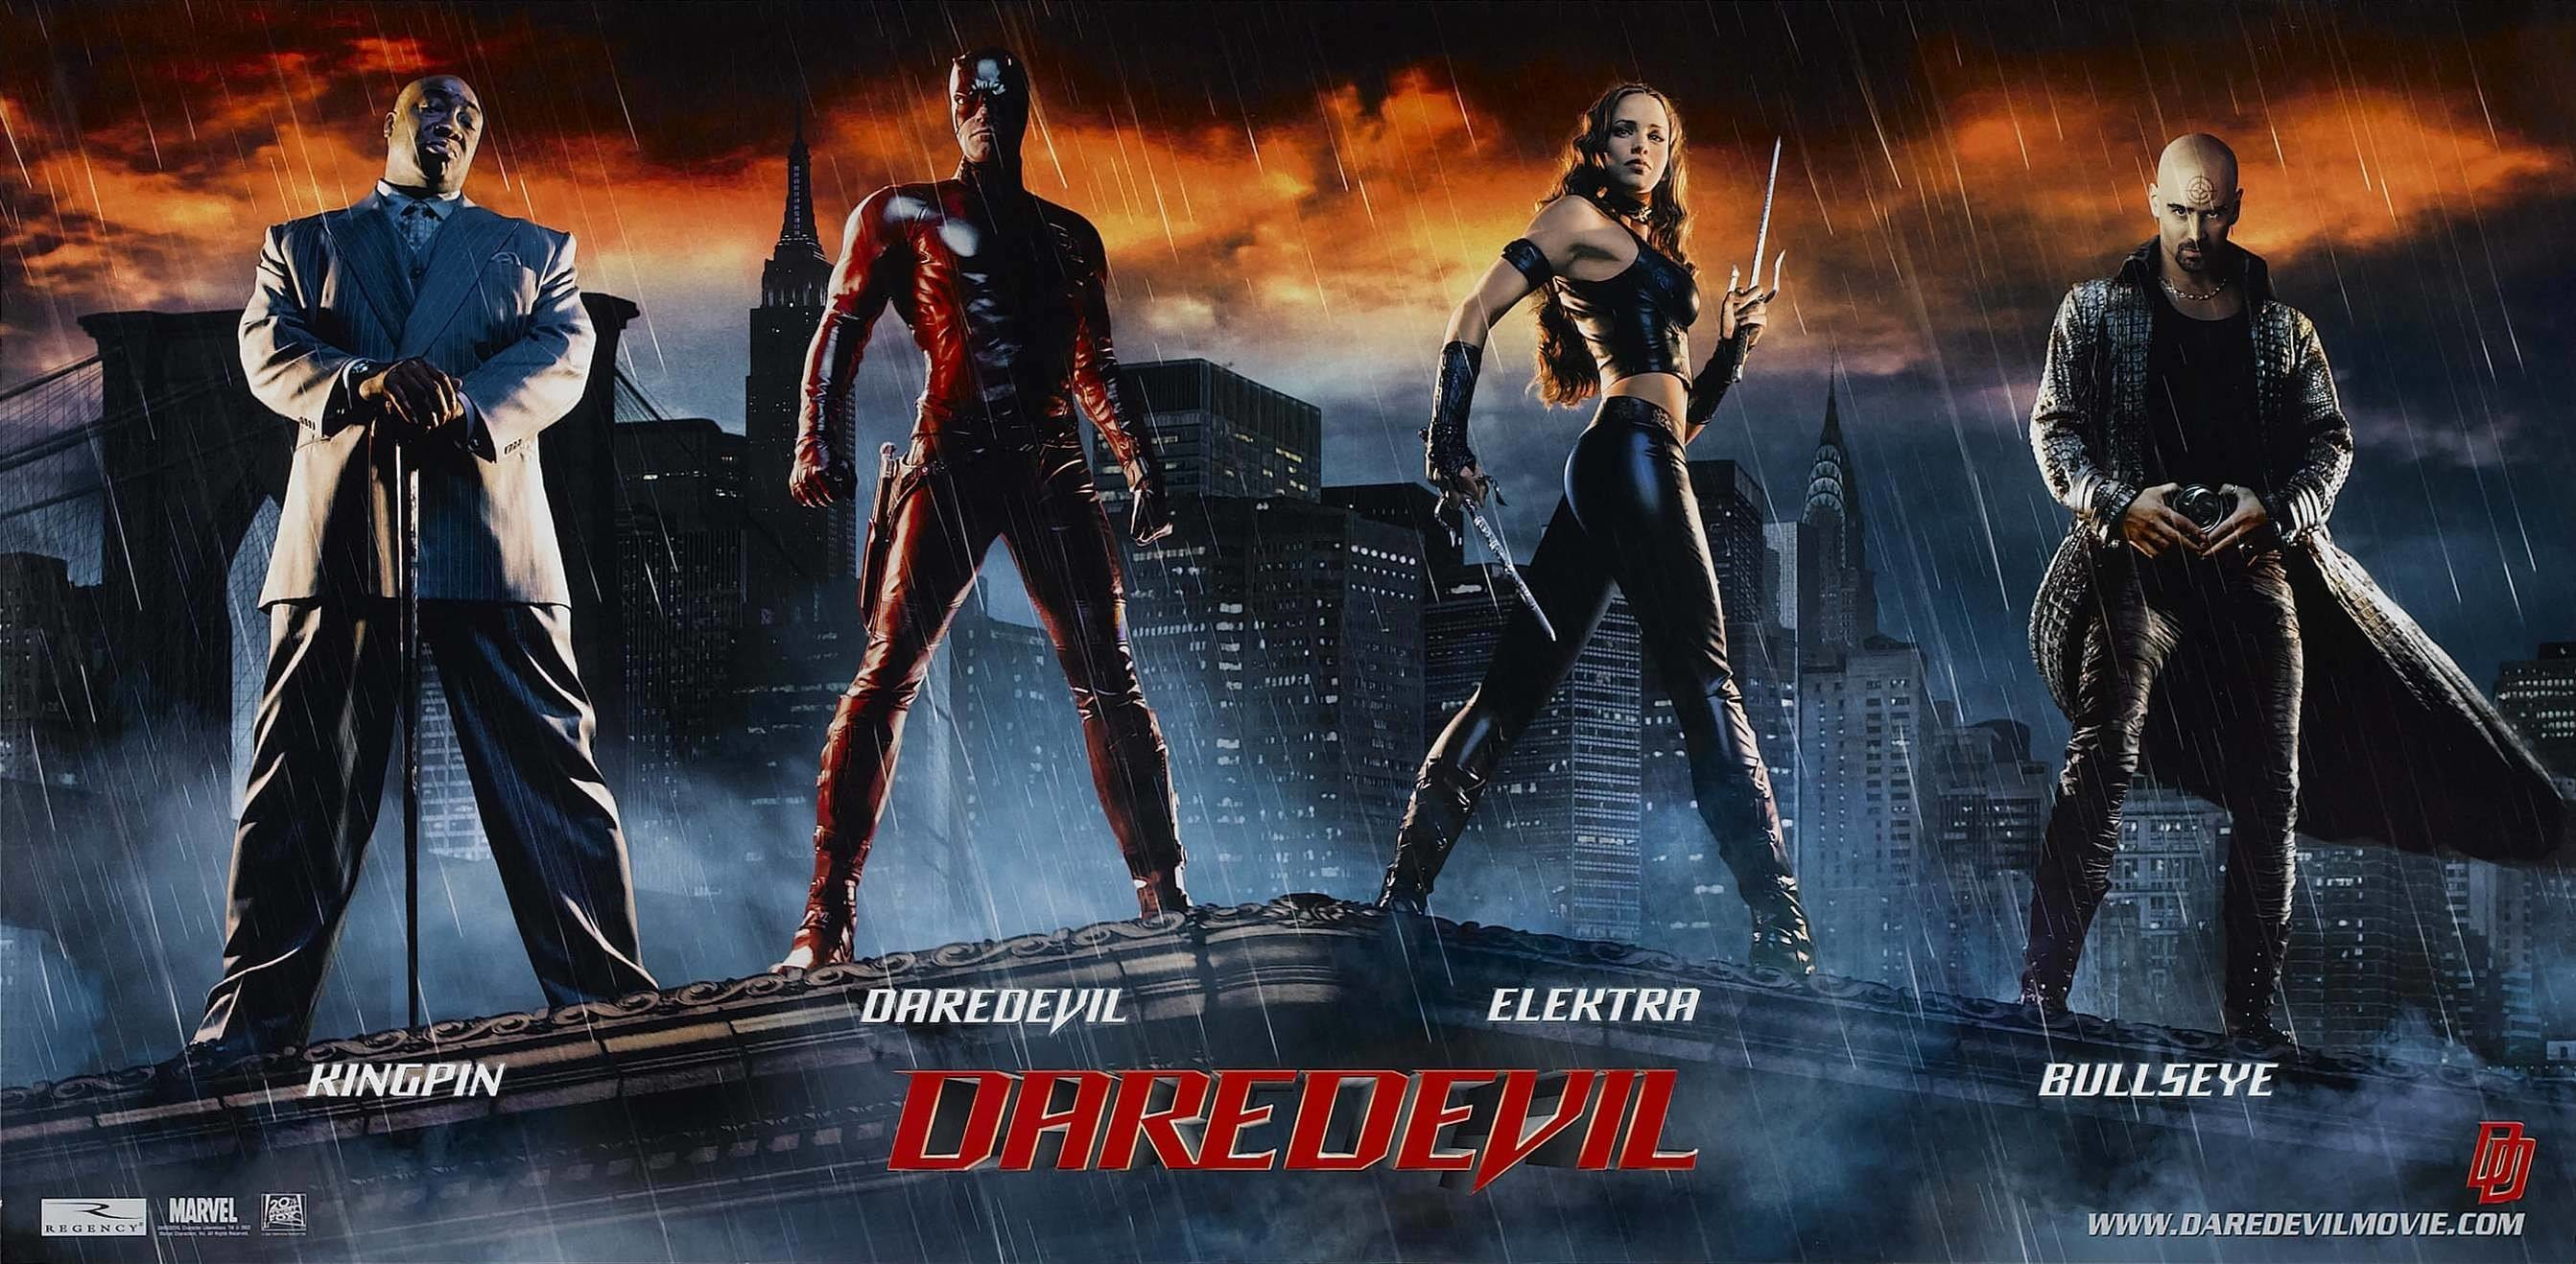 Res: 2685x1318, Daredevil Movie Wallpapers Widescreen